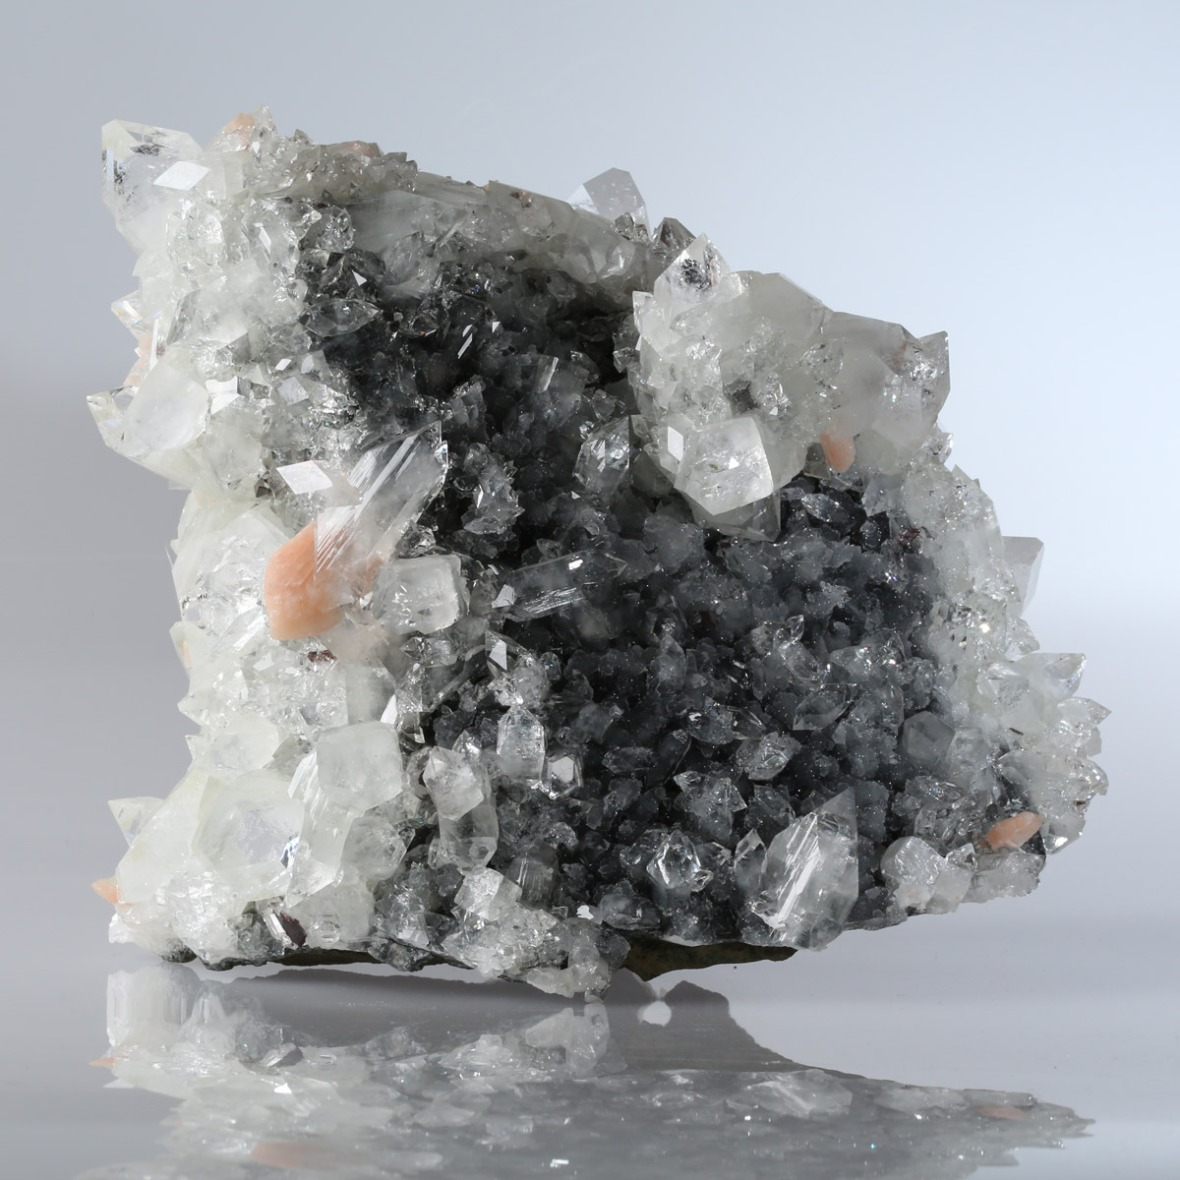 Apophyllite photographed by Serge Briez for Imagin'all (http://www.cristaux-sante.com)